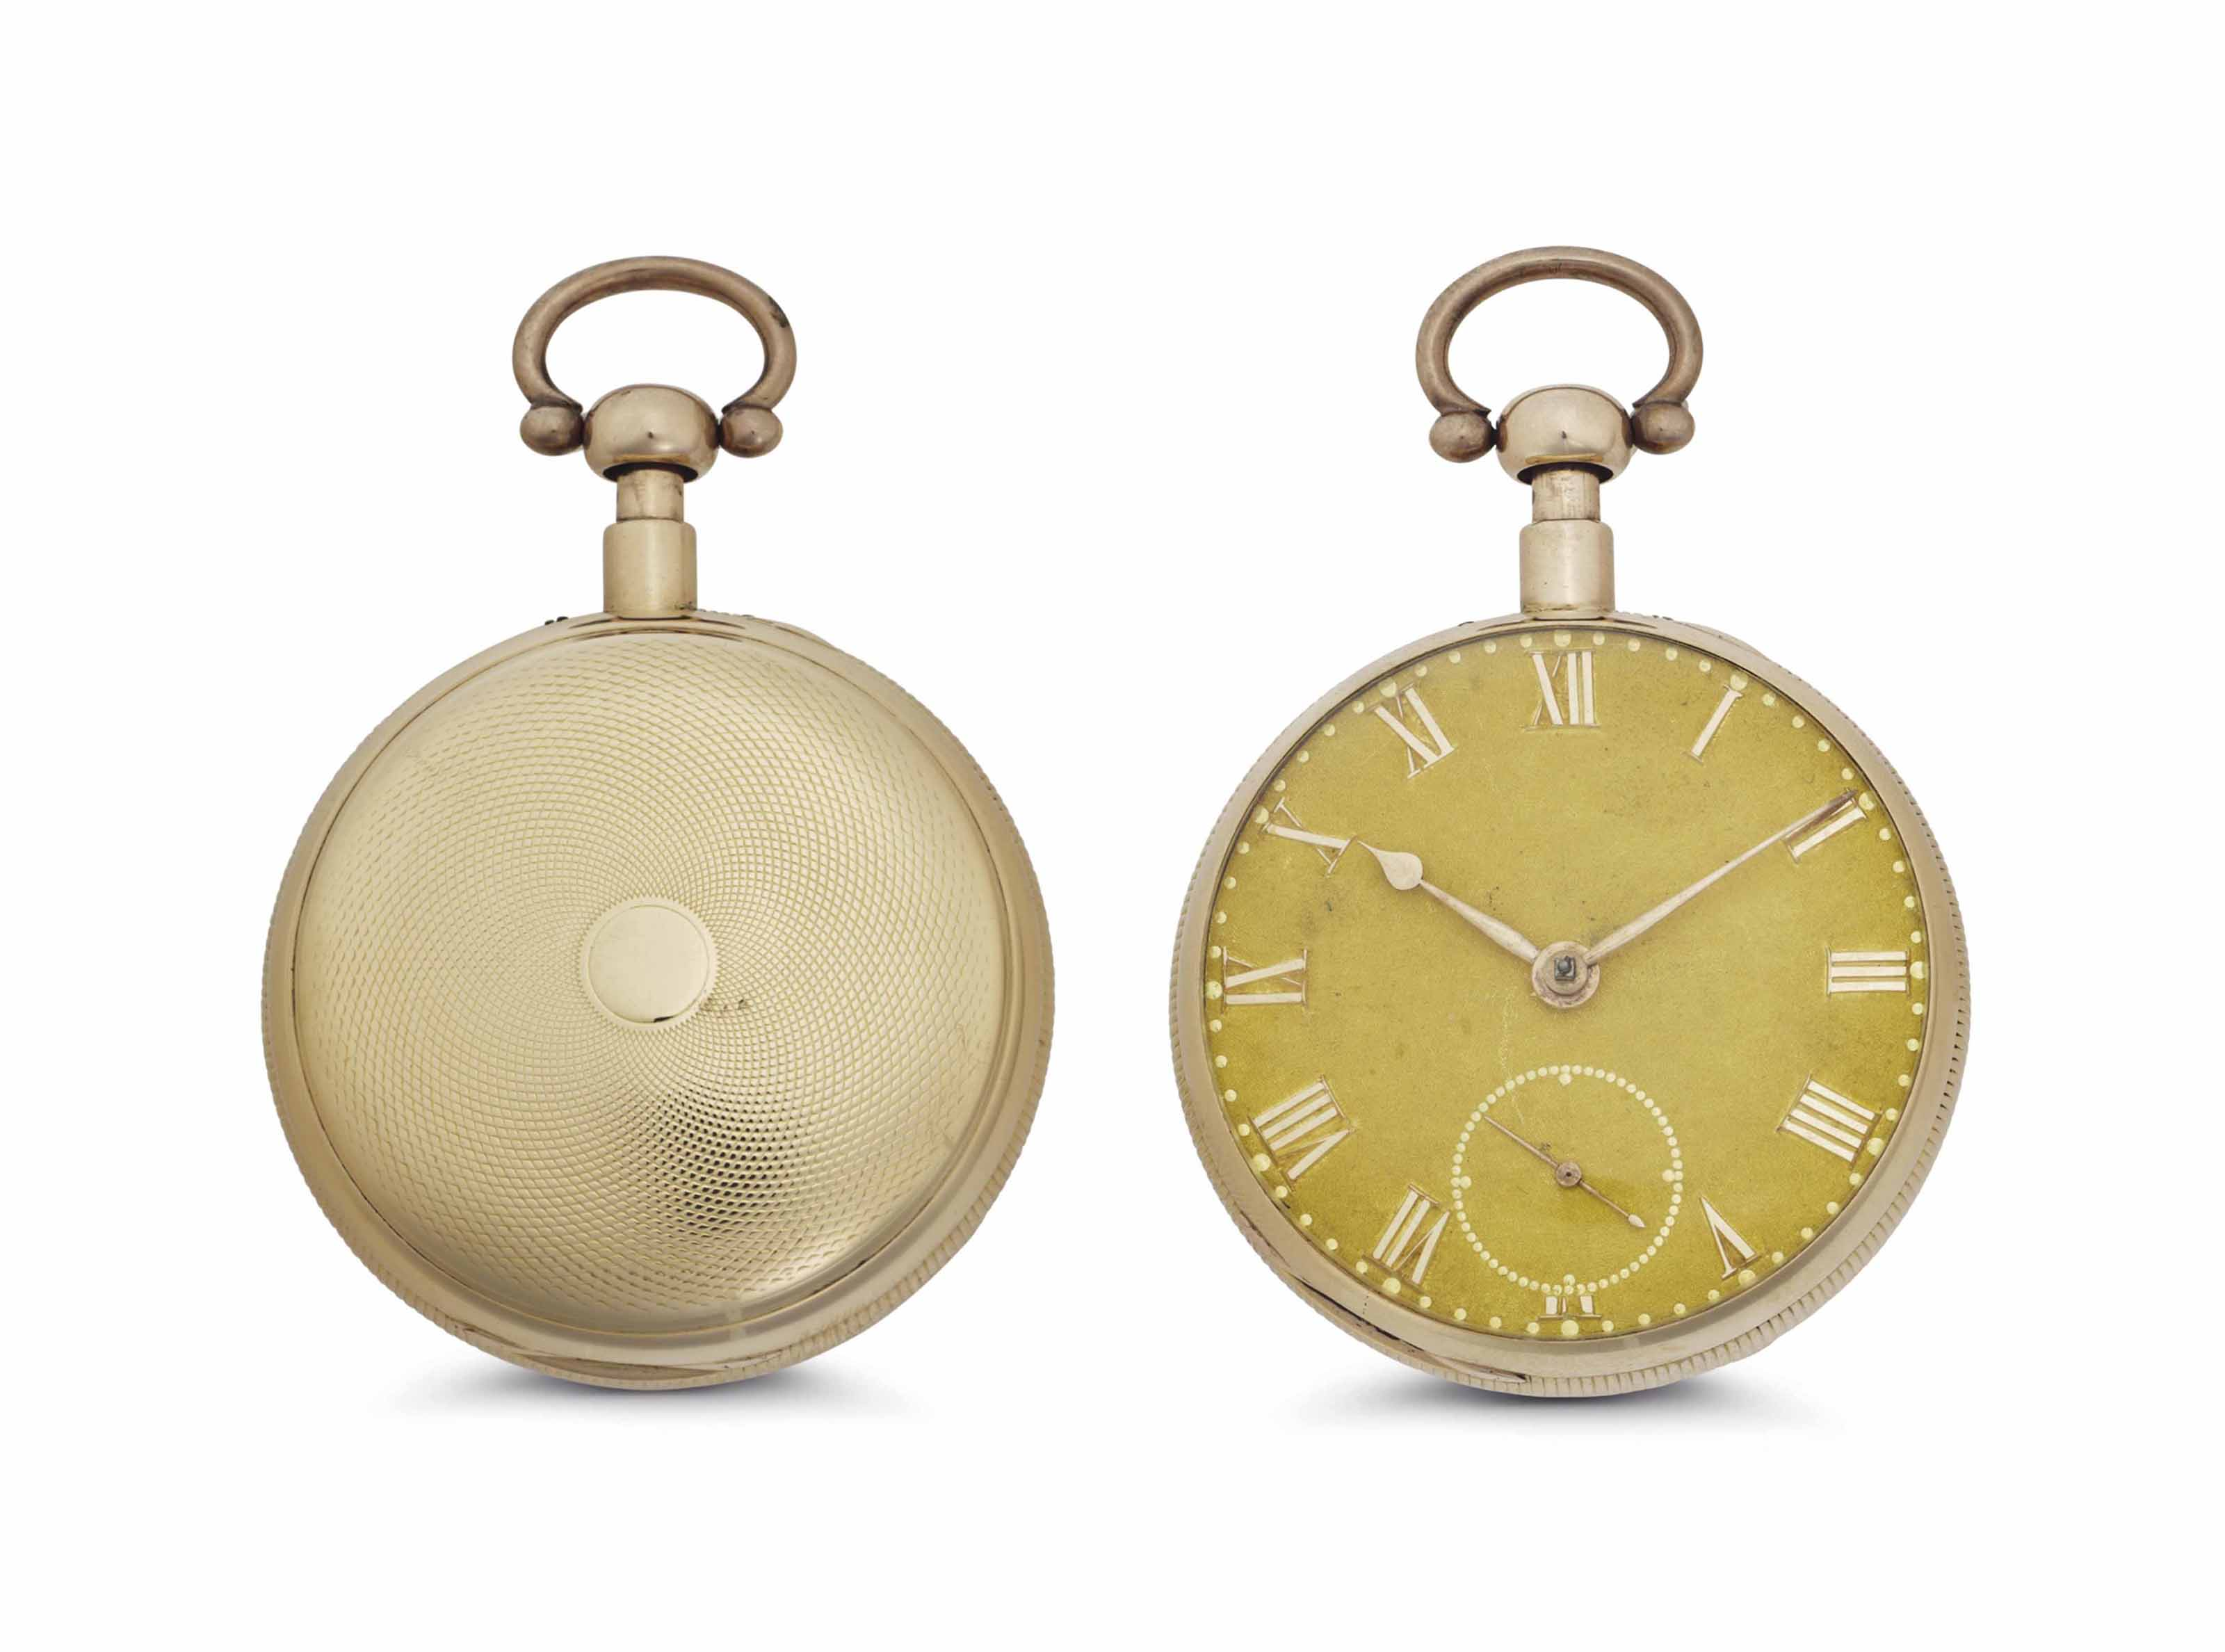 Barwise. An 18k Pink Gold Quarter Repeating Openface Keywound Duplex Pocket Watch